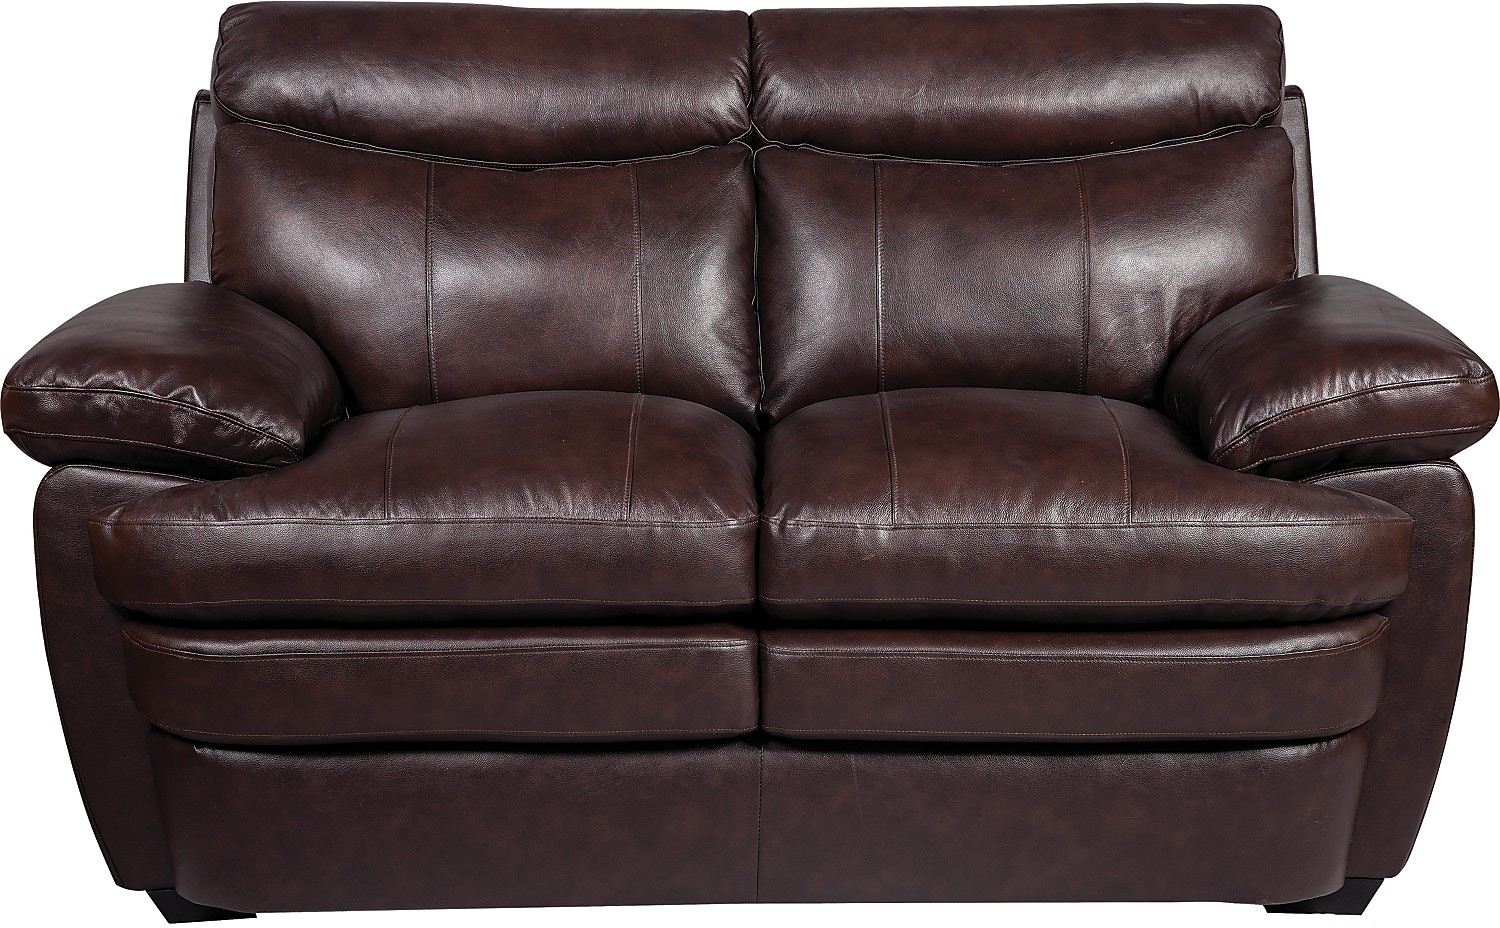 genuine leather sofa and loveseat ciara traditional velvet marty brown the brick